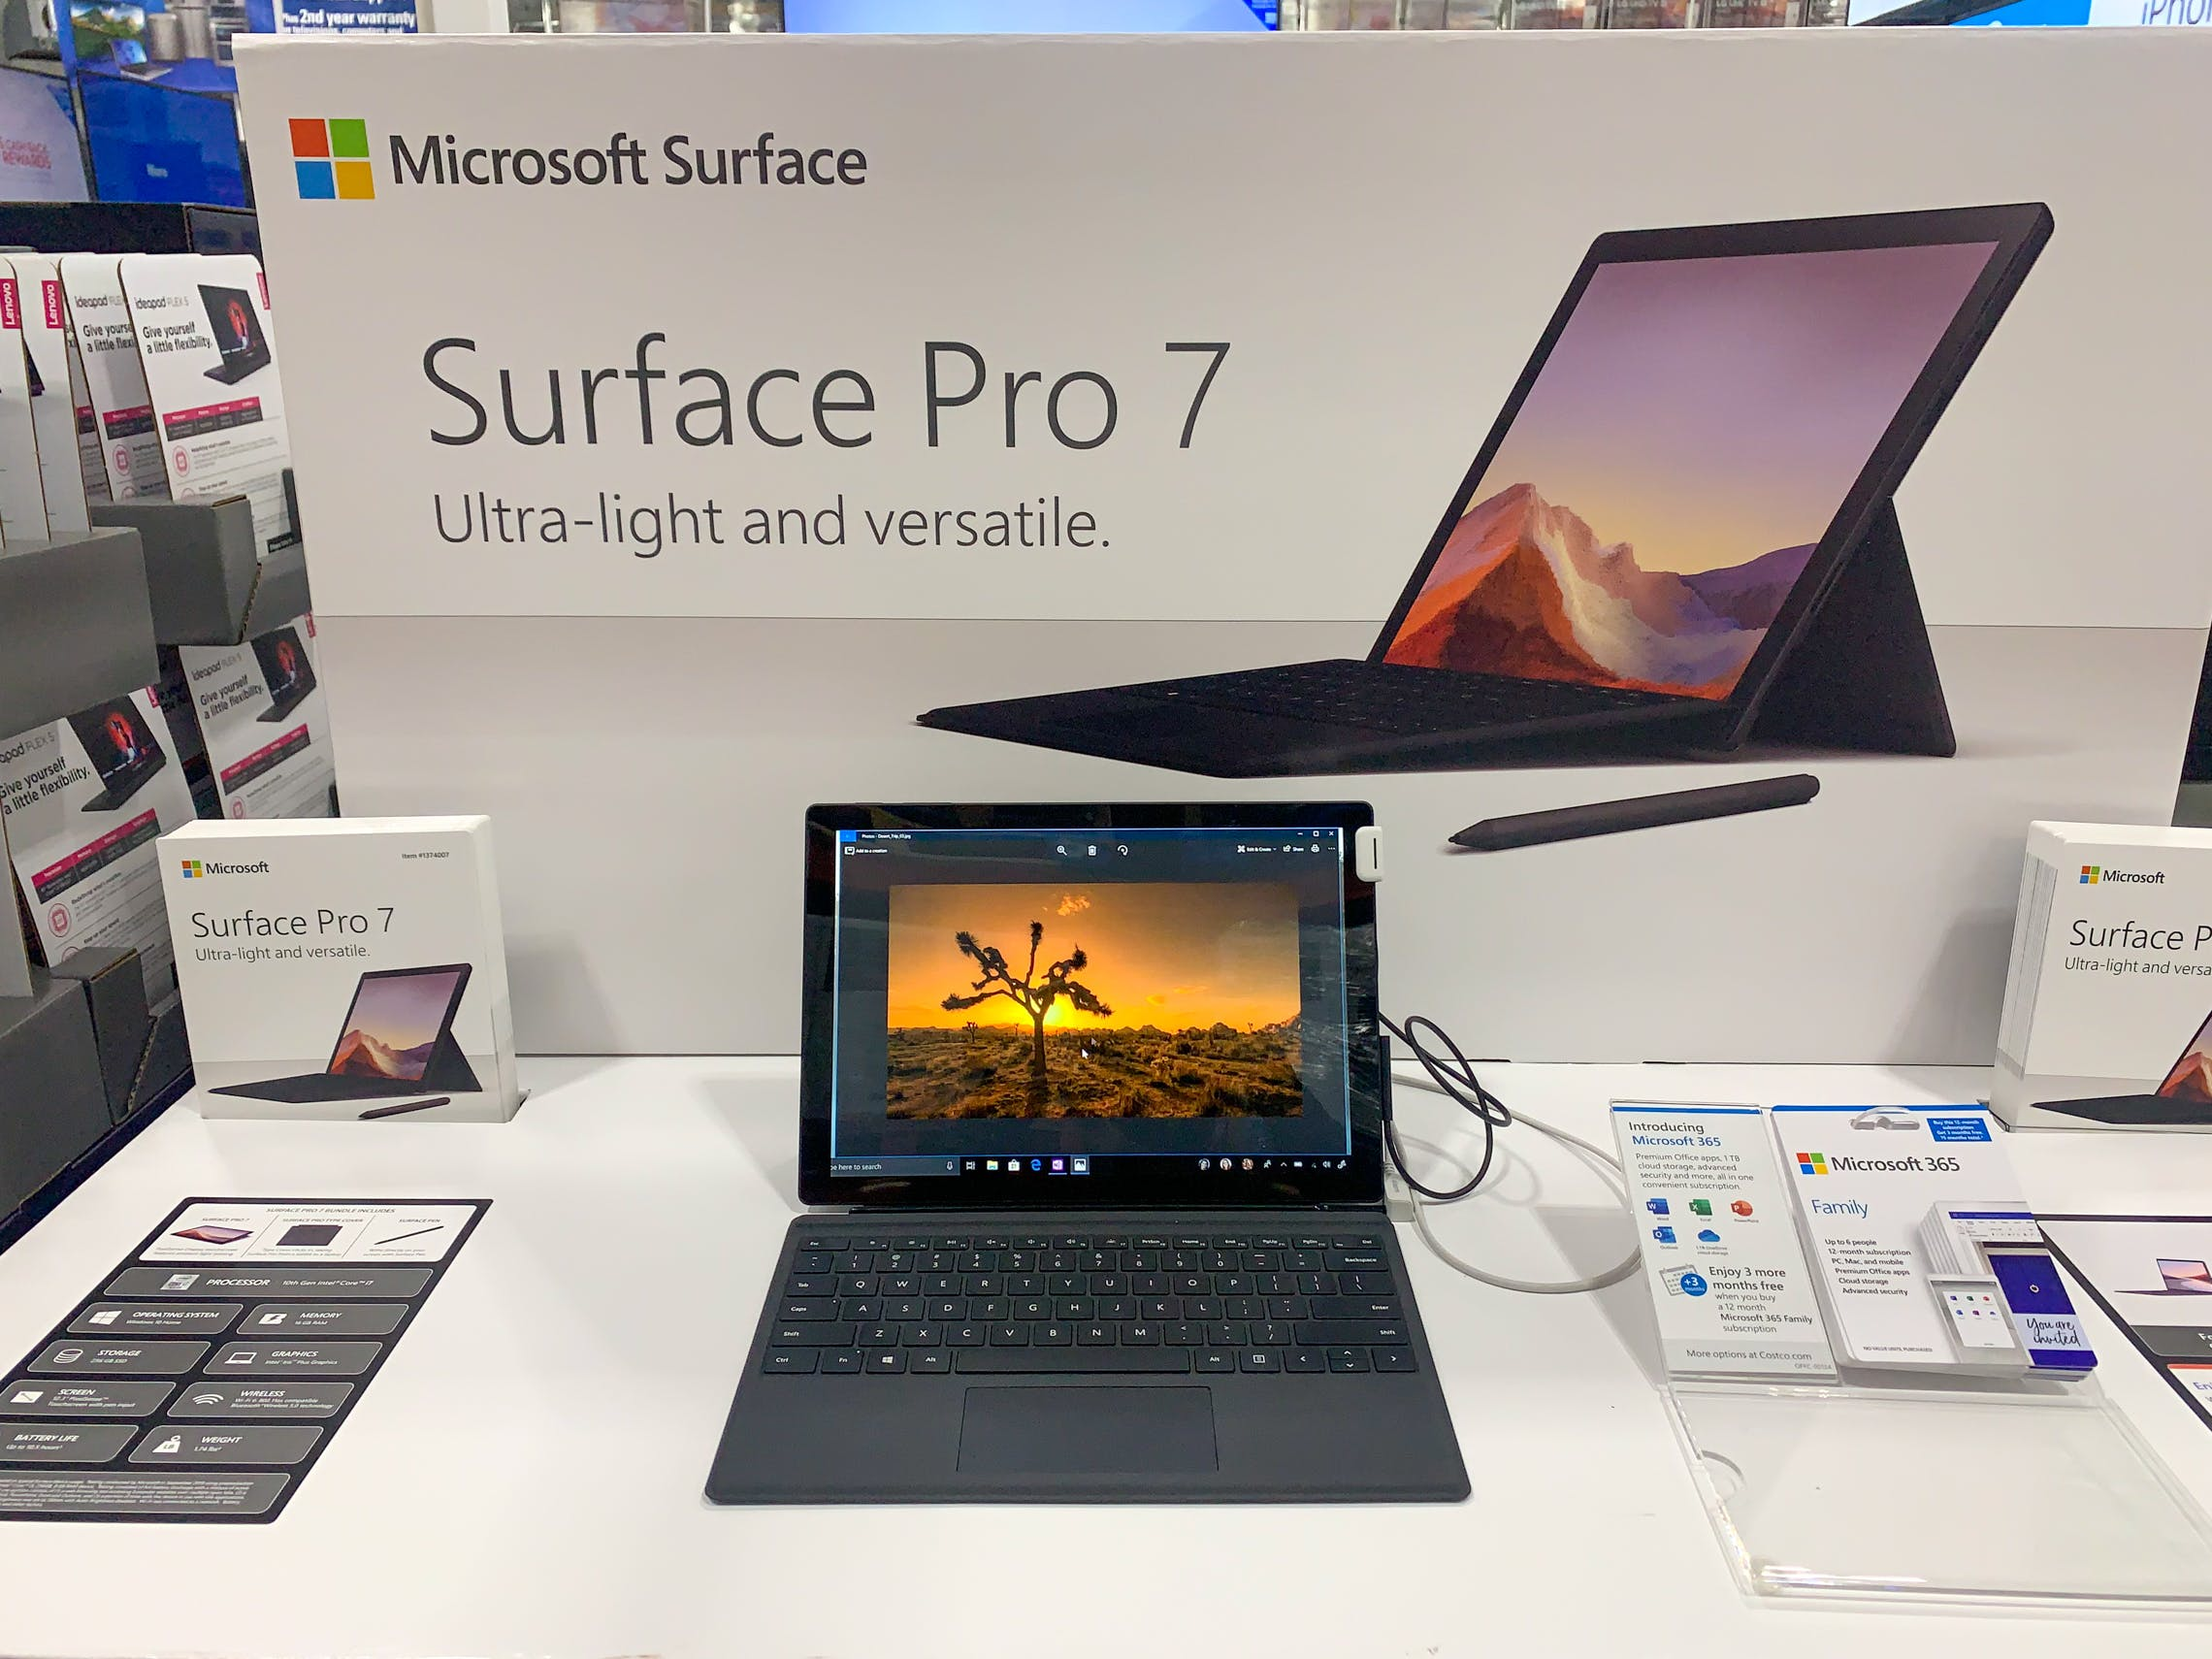 Microsoft Surface Pro 7 559 At Best Buy Save 400 The Krazy Coupon Lady